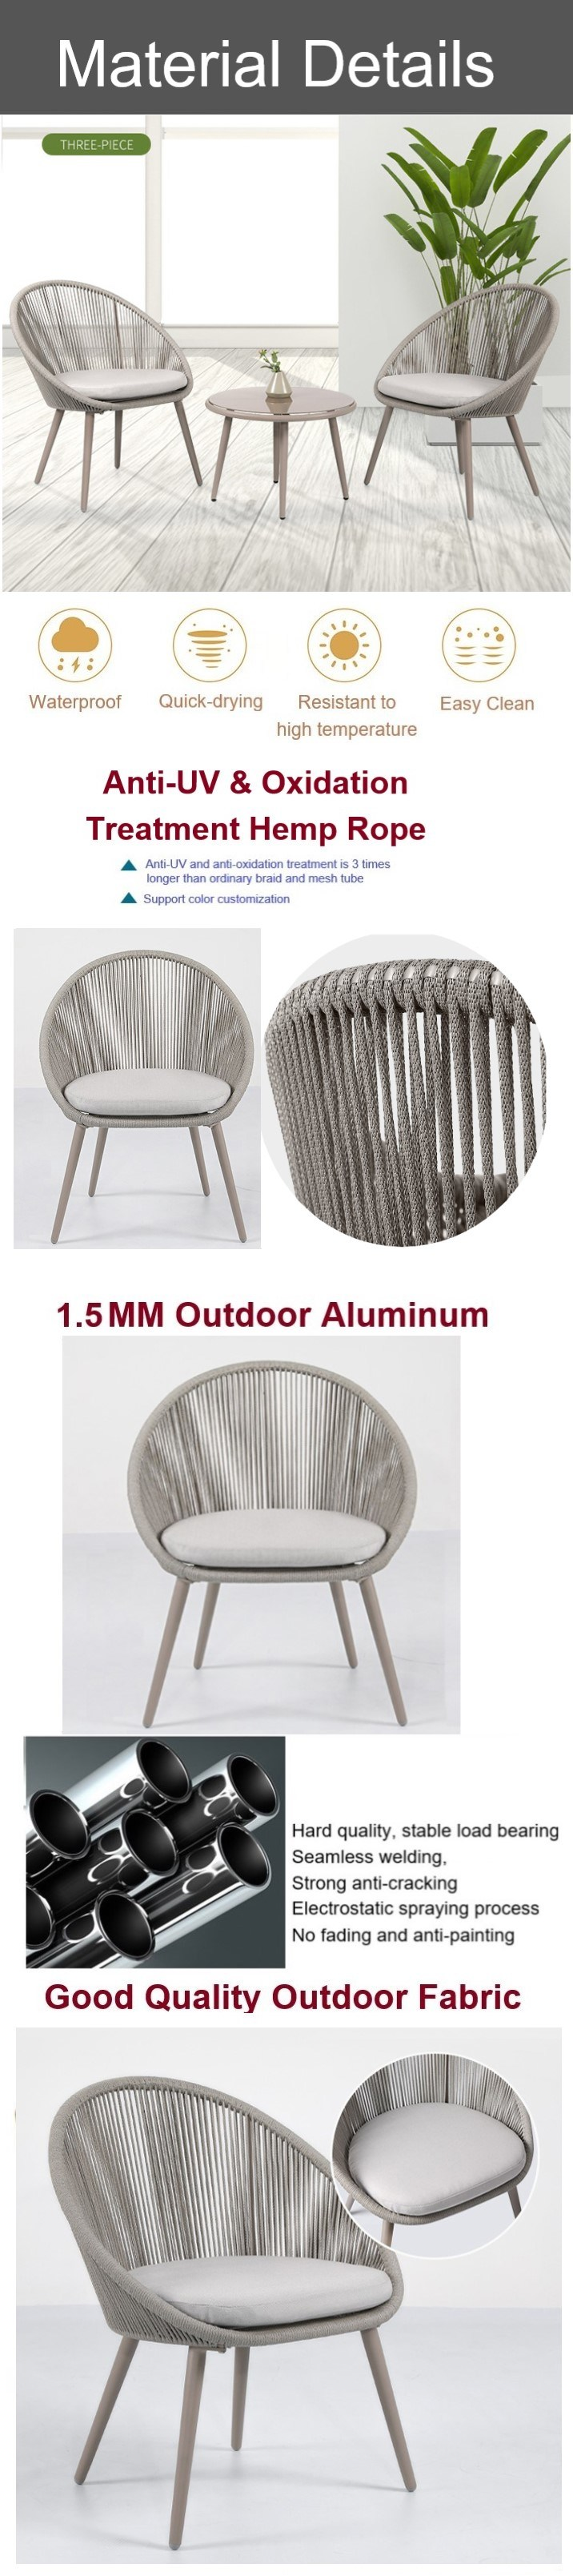 Patio Woven Rope Dining Chair Outdoor Furniture